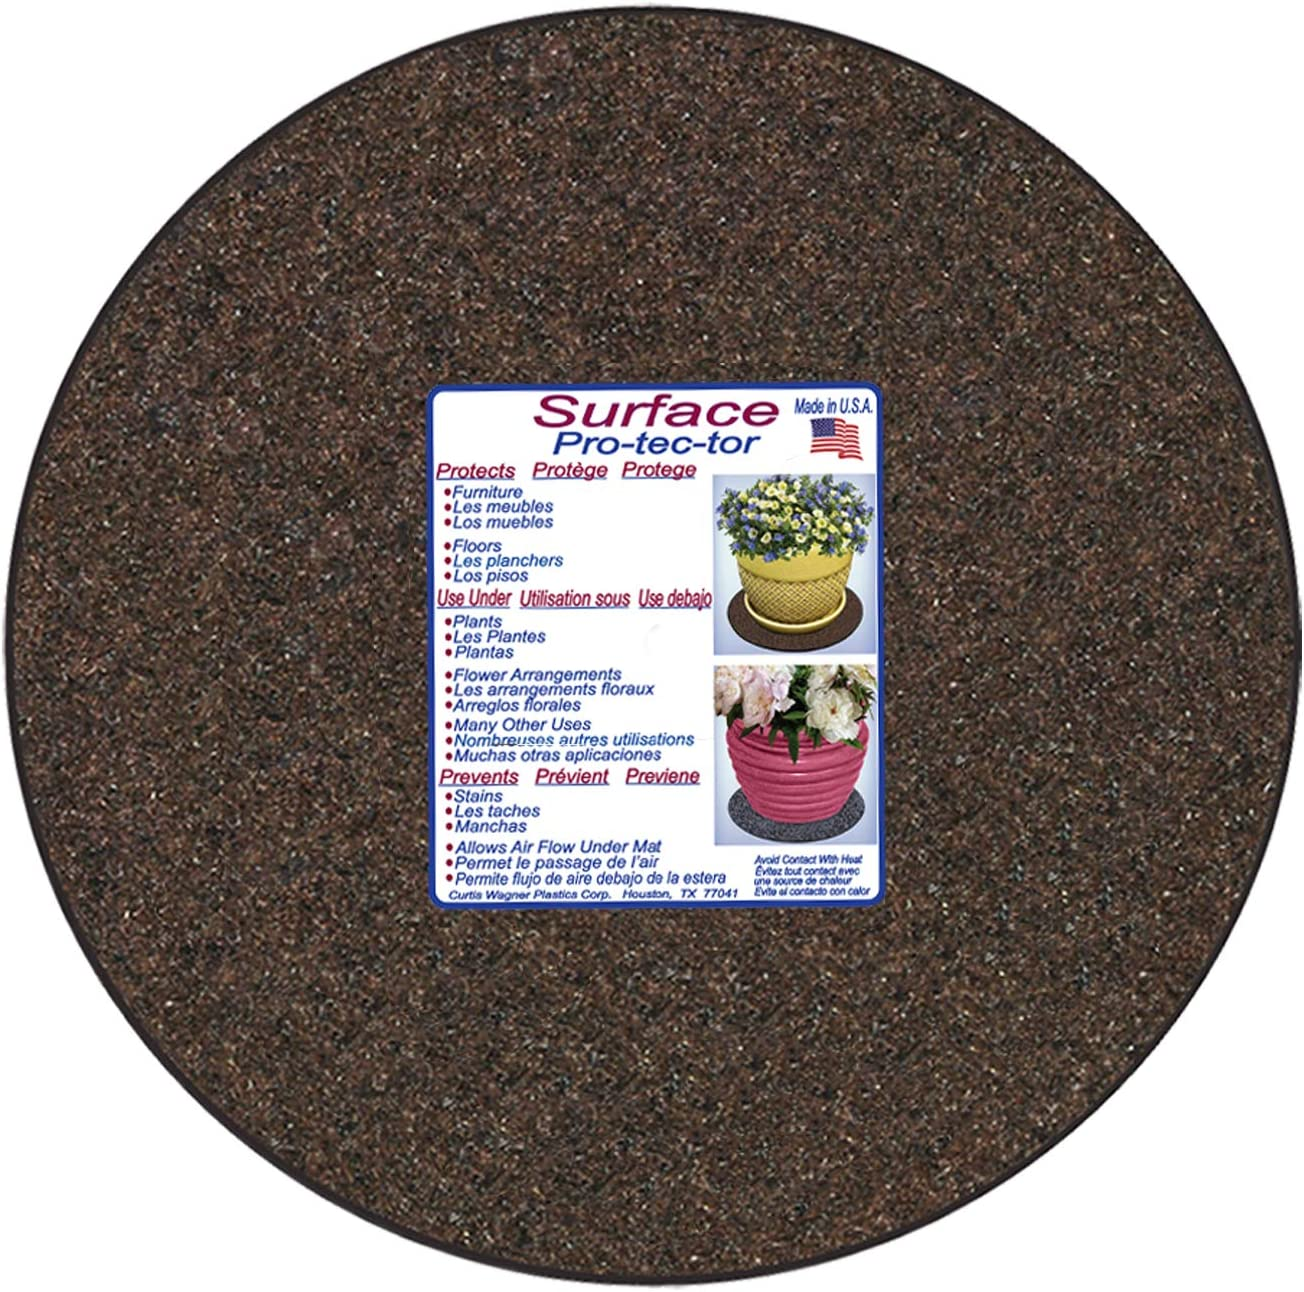 4 Diameter, Charcoal Gray, 5-Pack Use as Planter Coaster or Pads for Your Arts /& Crafts Curtis Wagner Plastics Fabric /& Cork Plant Mat - Round Thick Water Absorbent Cork Plant Coasters